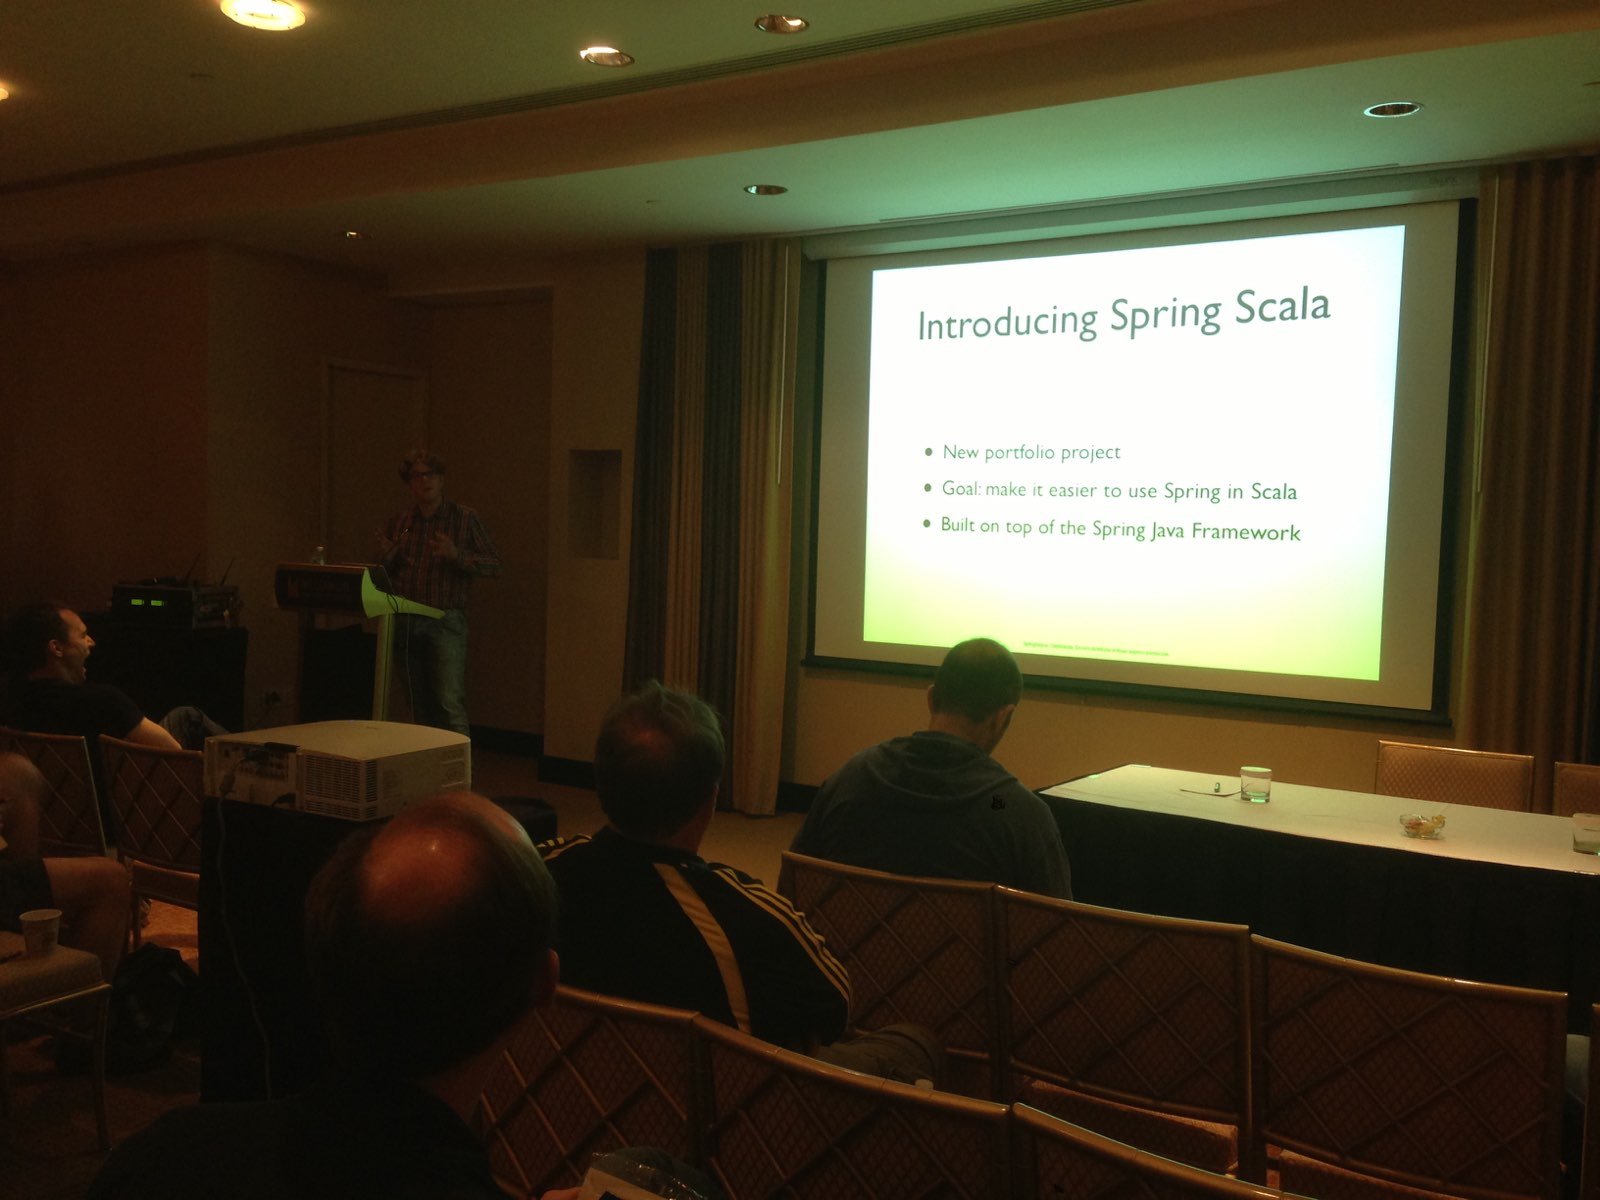 Introducing Spring Scala